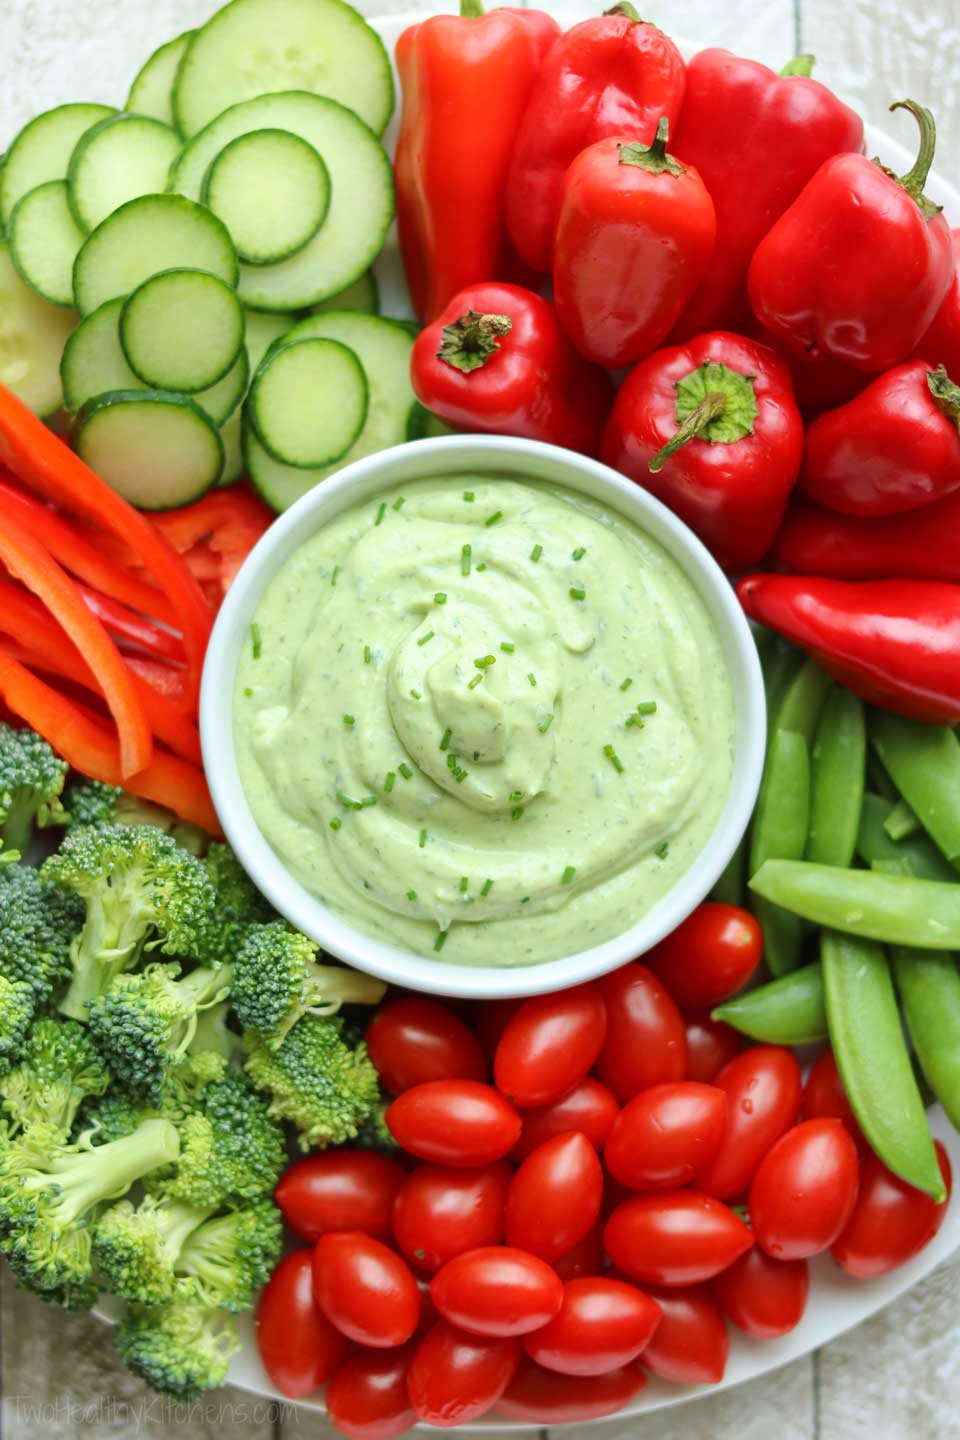 With its pretty green color, this healthy ranch dip is a perfect Christmas appetizer – great for vegetable trays, surrounded by festive red and green veggies!